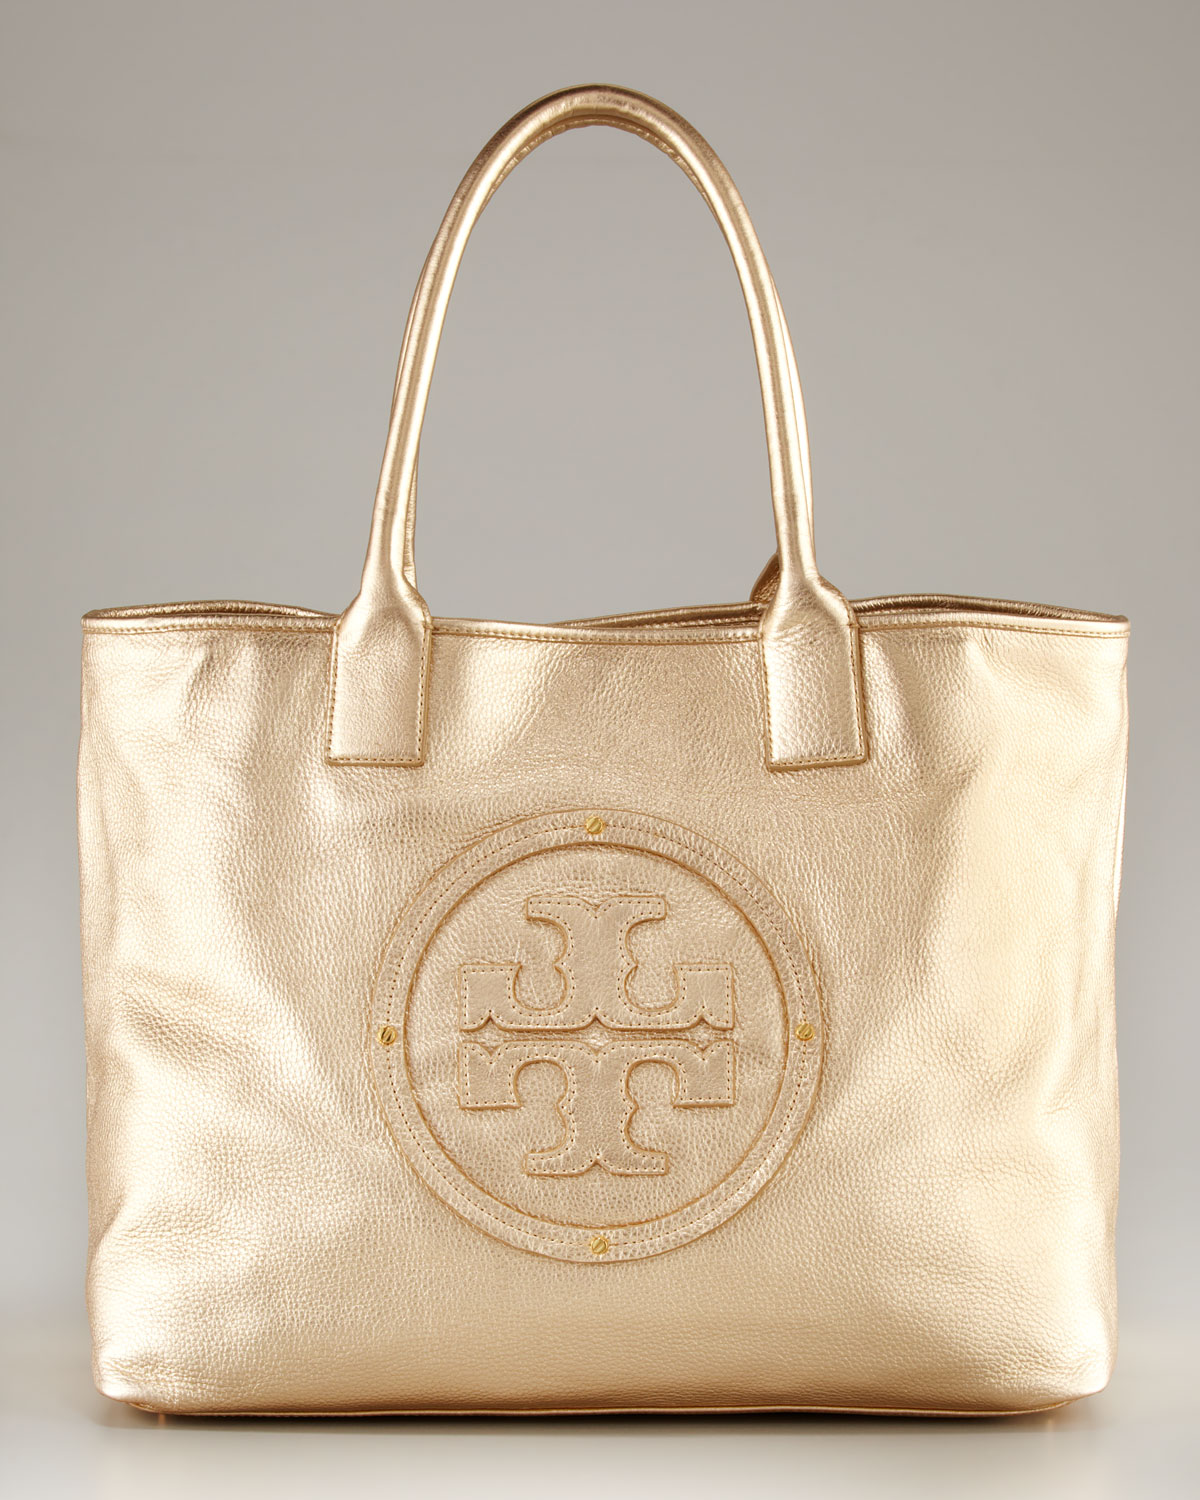 82fe88cc070 Tory Burch Stacked Logo Classic Tote in Metallic - Lyst